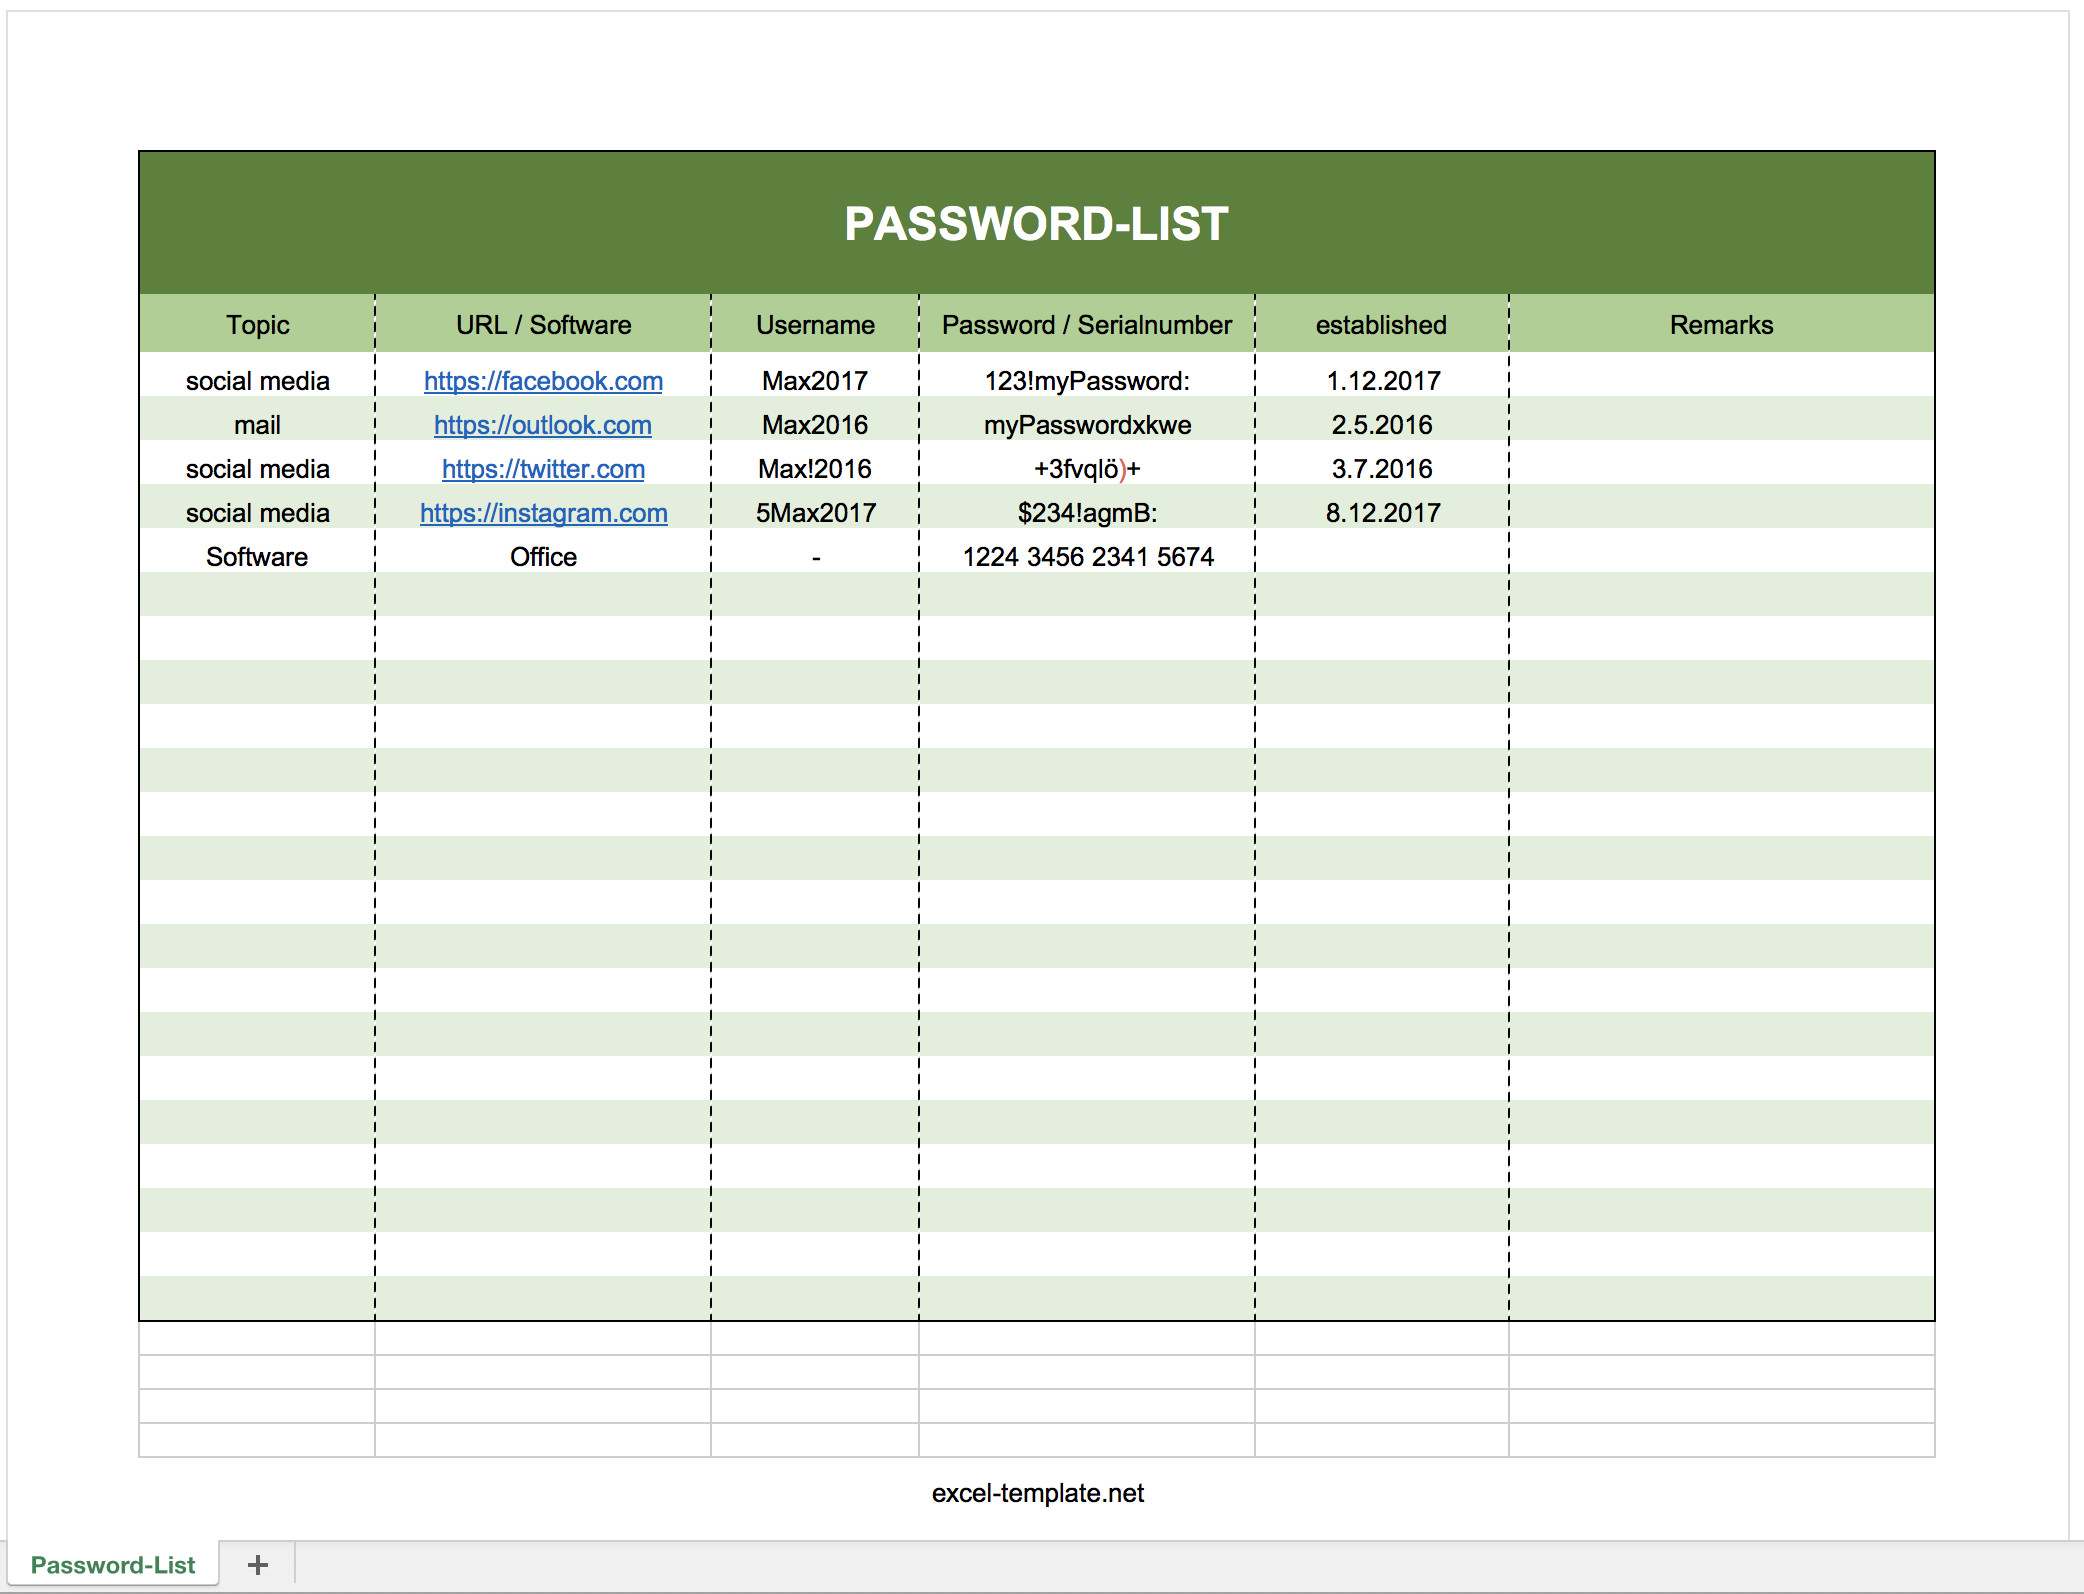 Microsoft Excel Password Template Free Password Log List as Excel Template